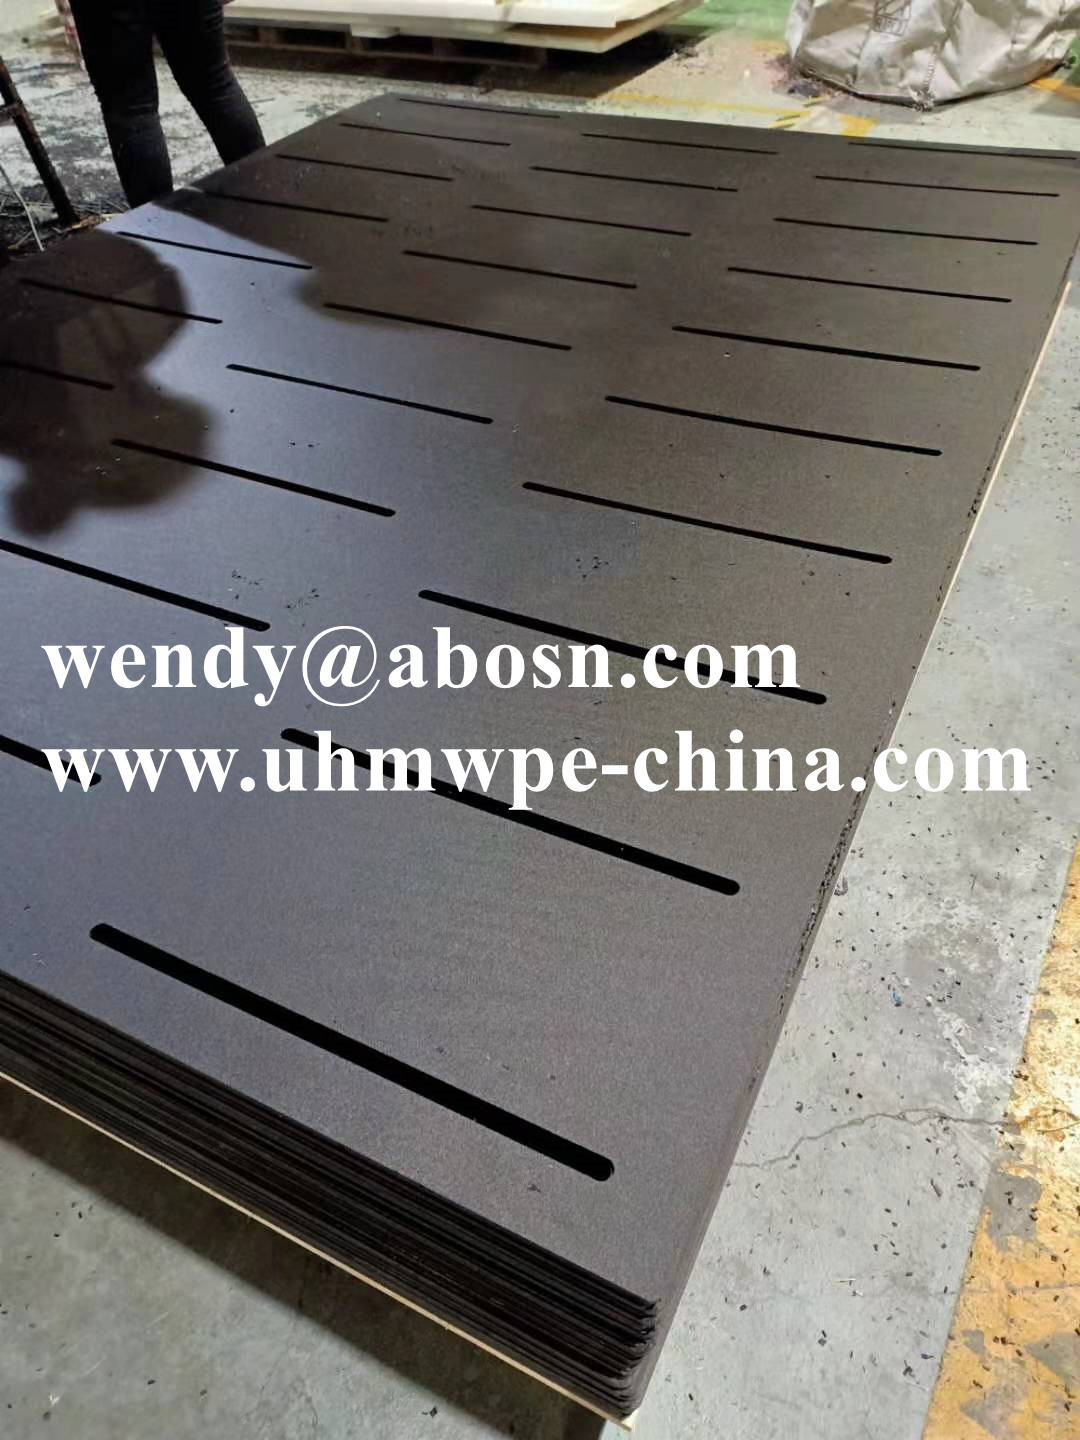 Anti-slip Grooved HDPE Farm Manure Leak Filter Plate for Cow Pig Breeding